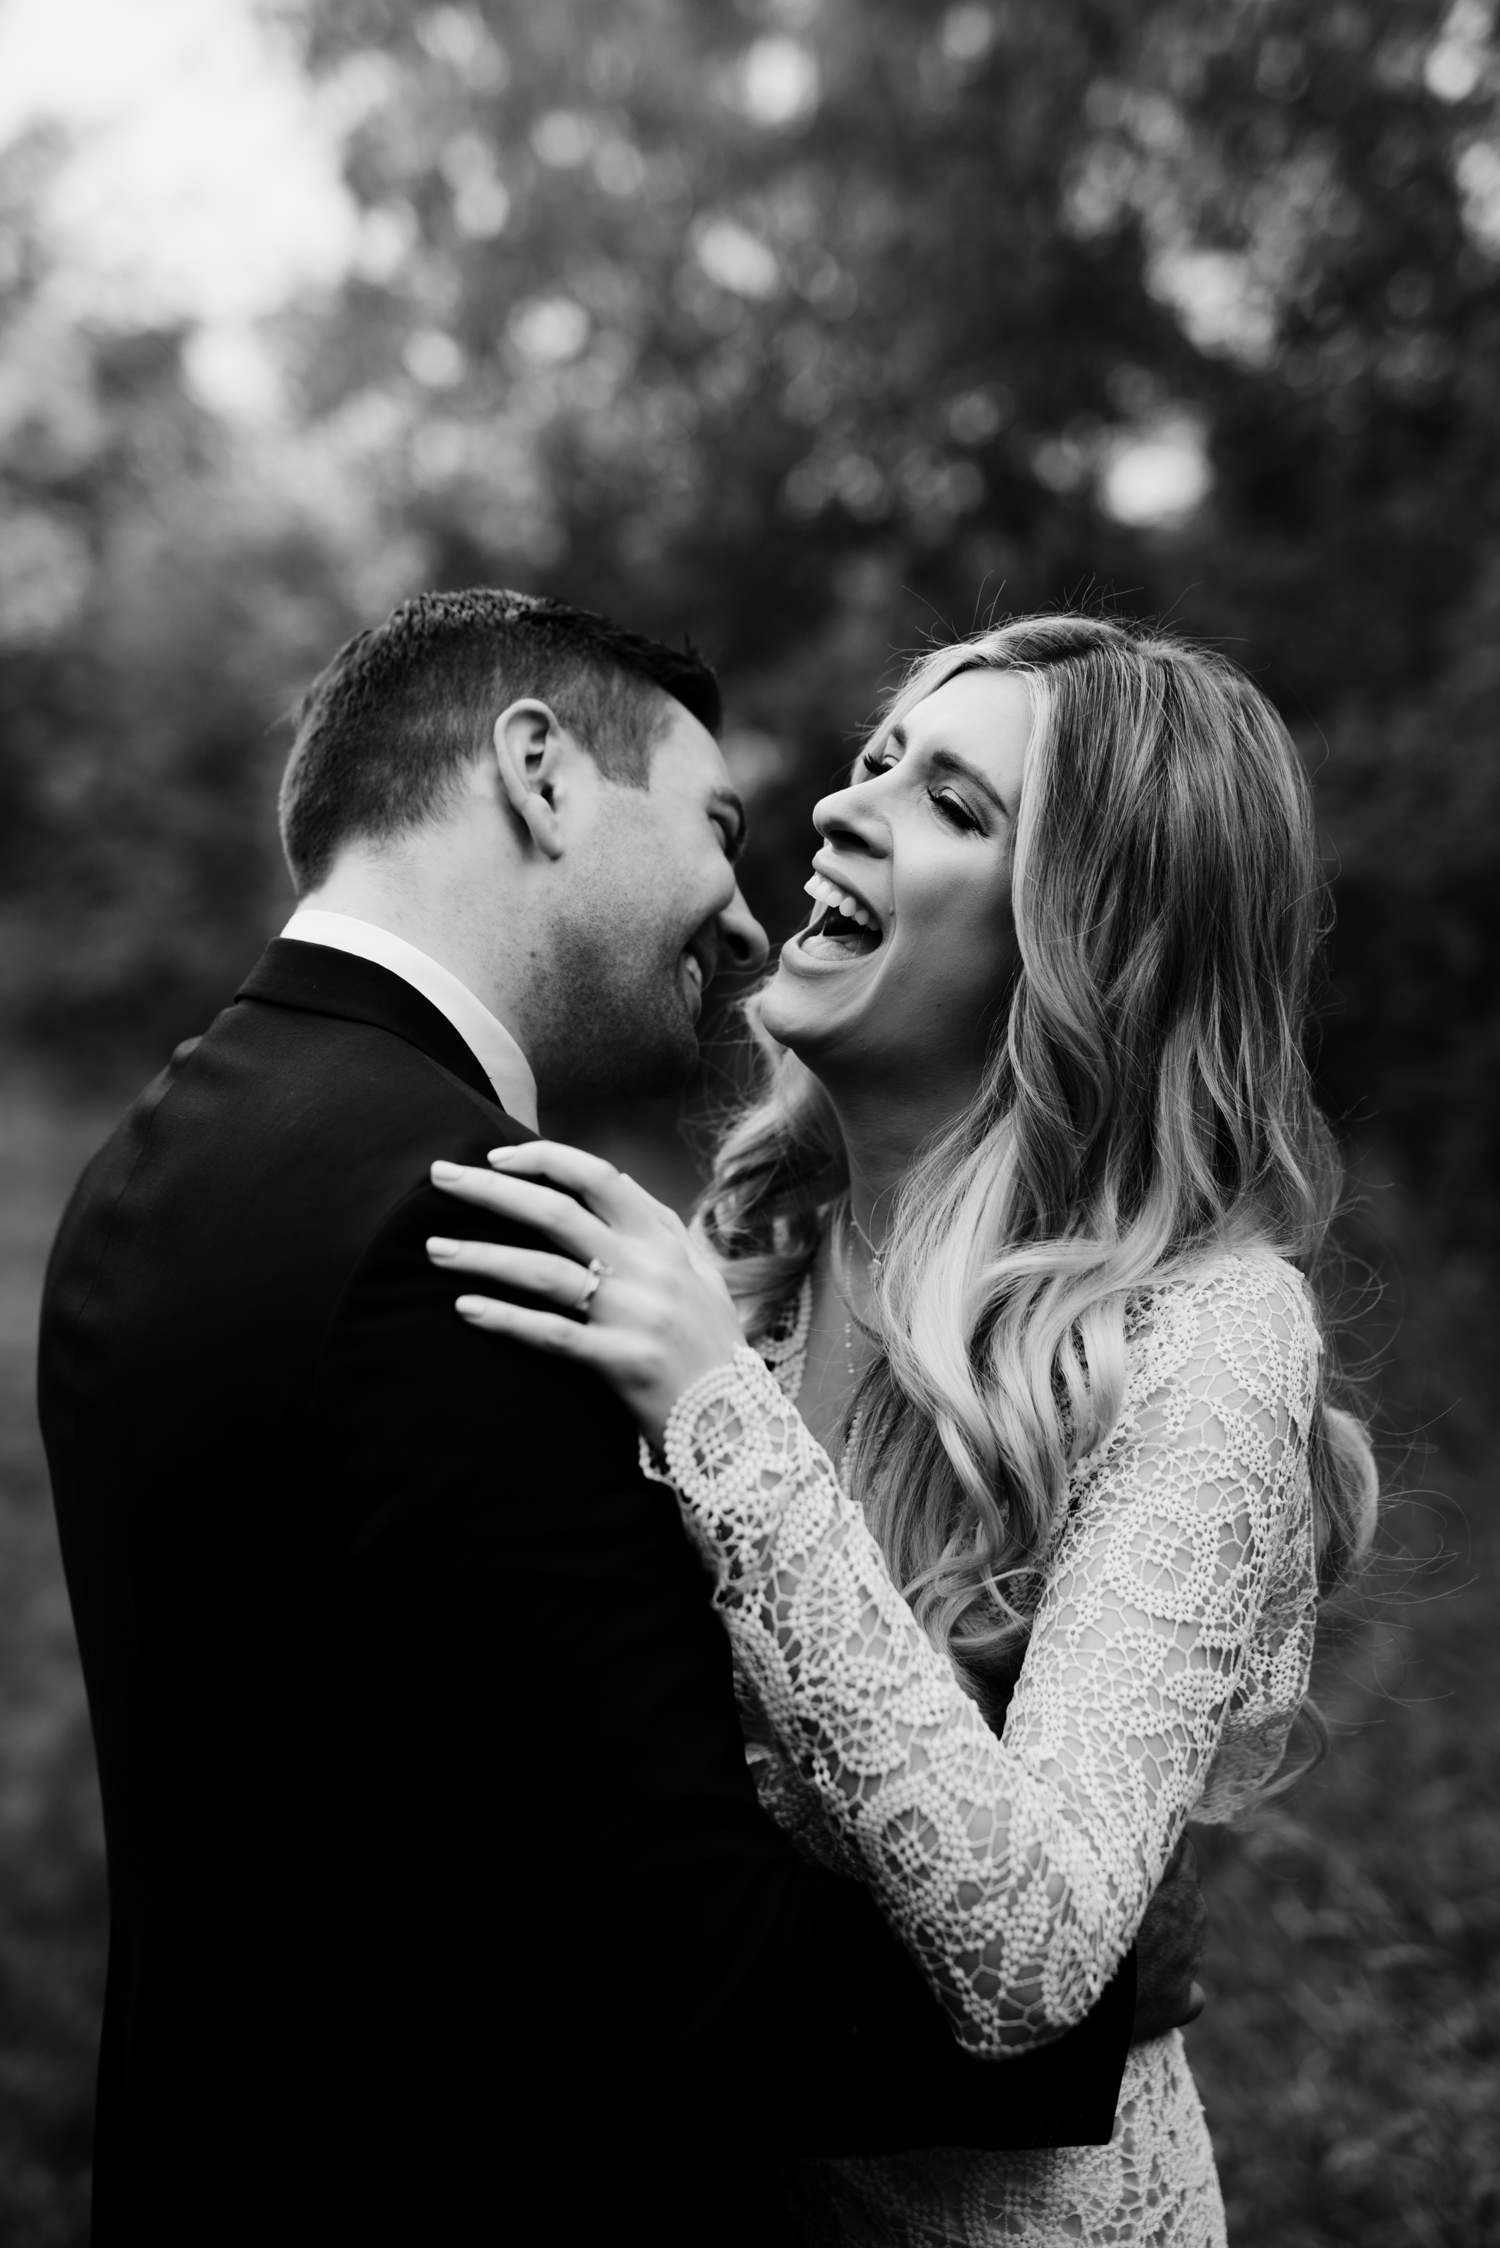 Wedding and Elopement Photography_Karly Ford Photo 17.jpg